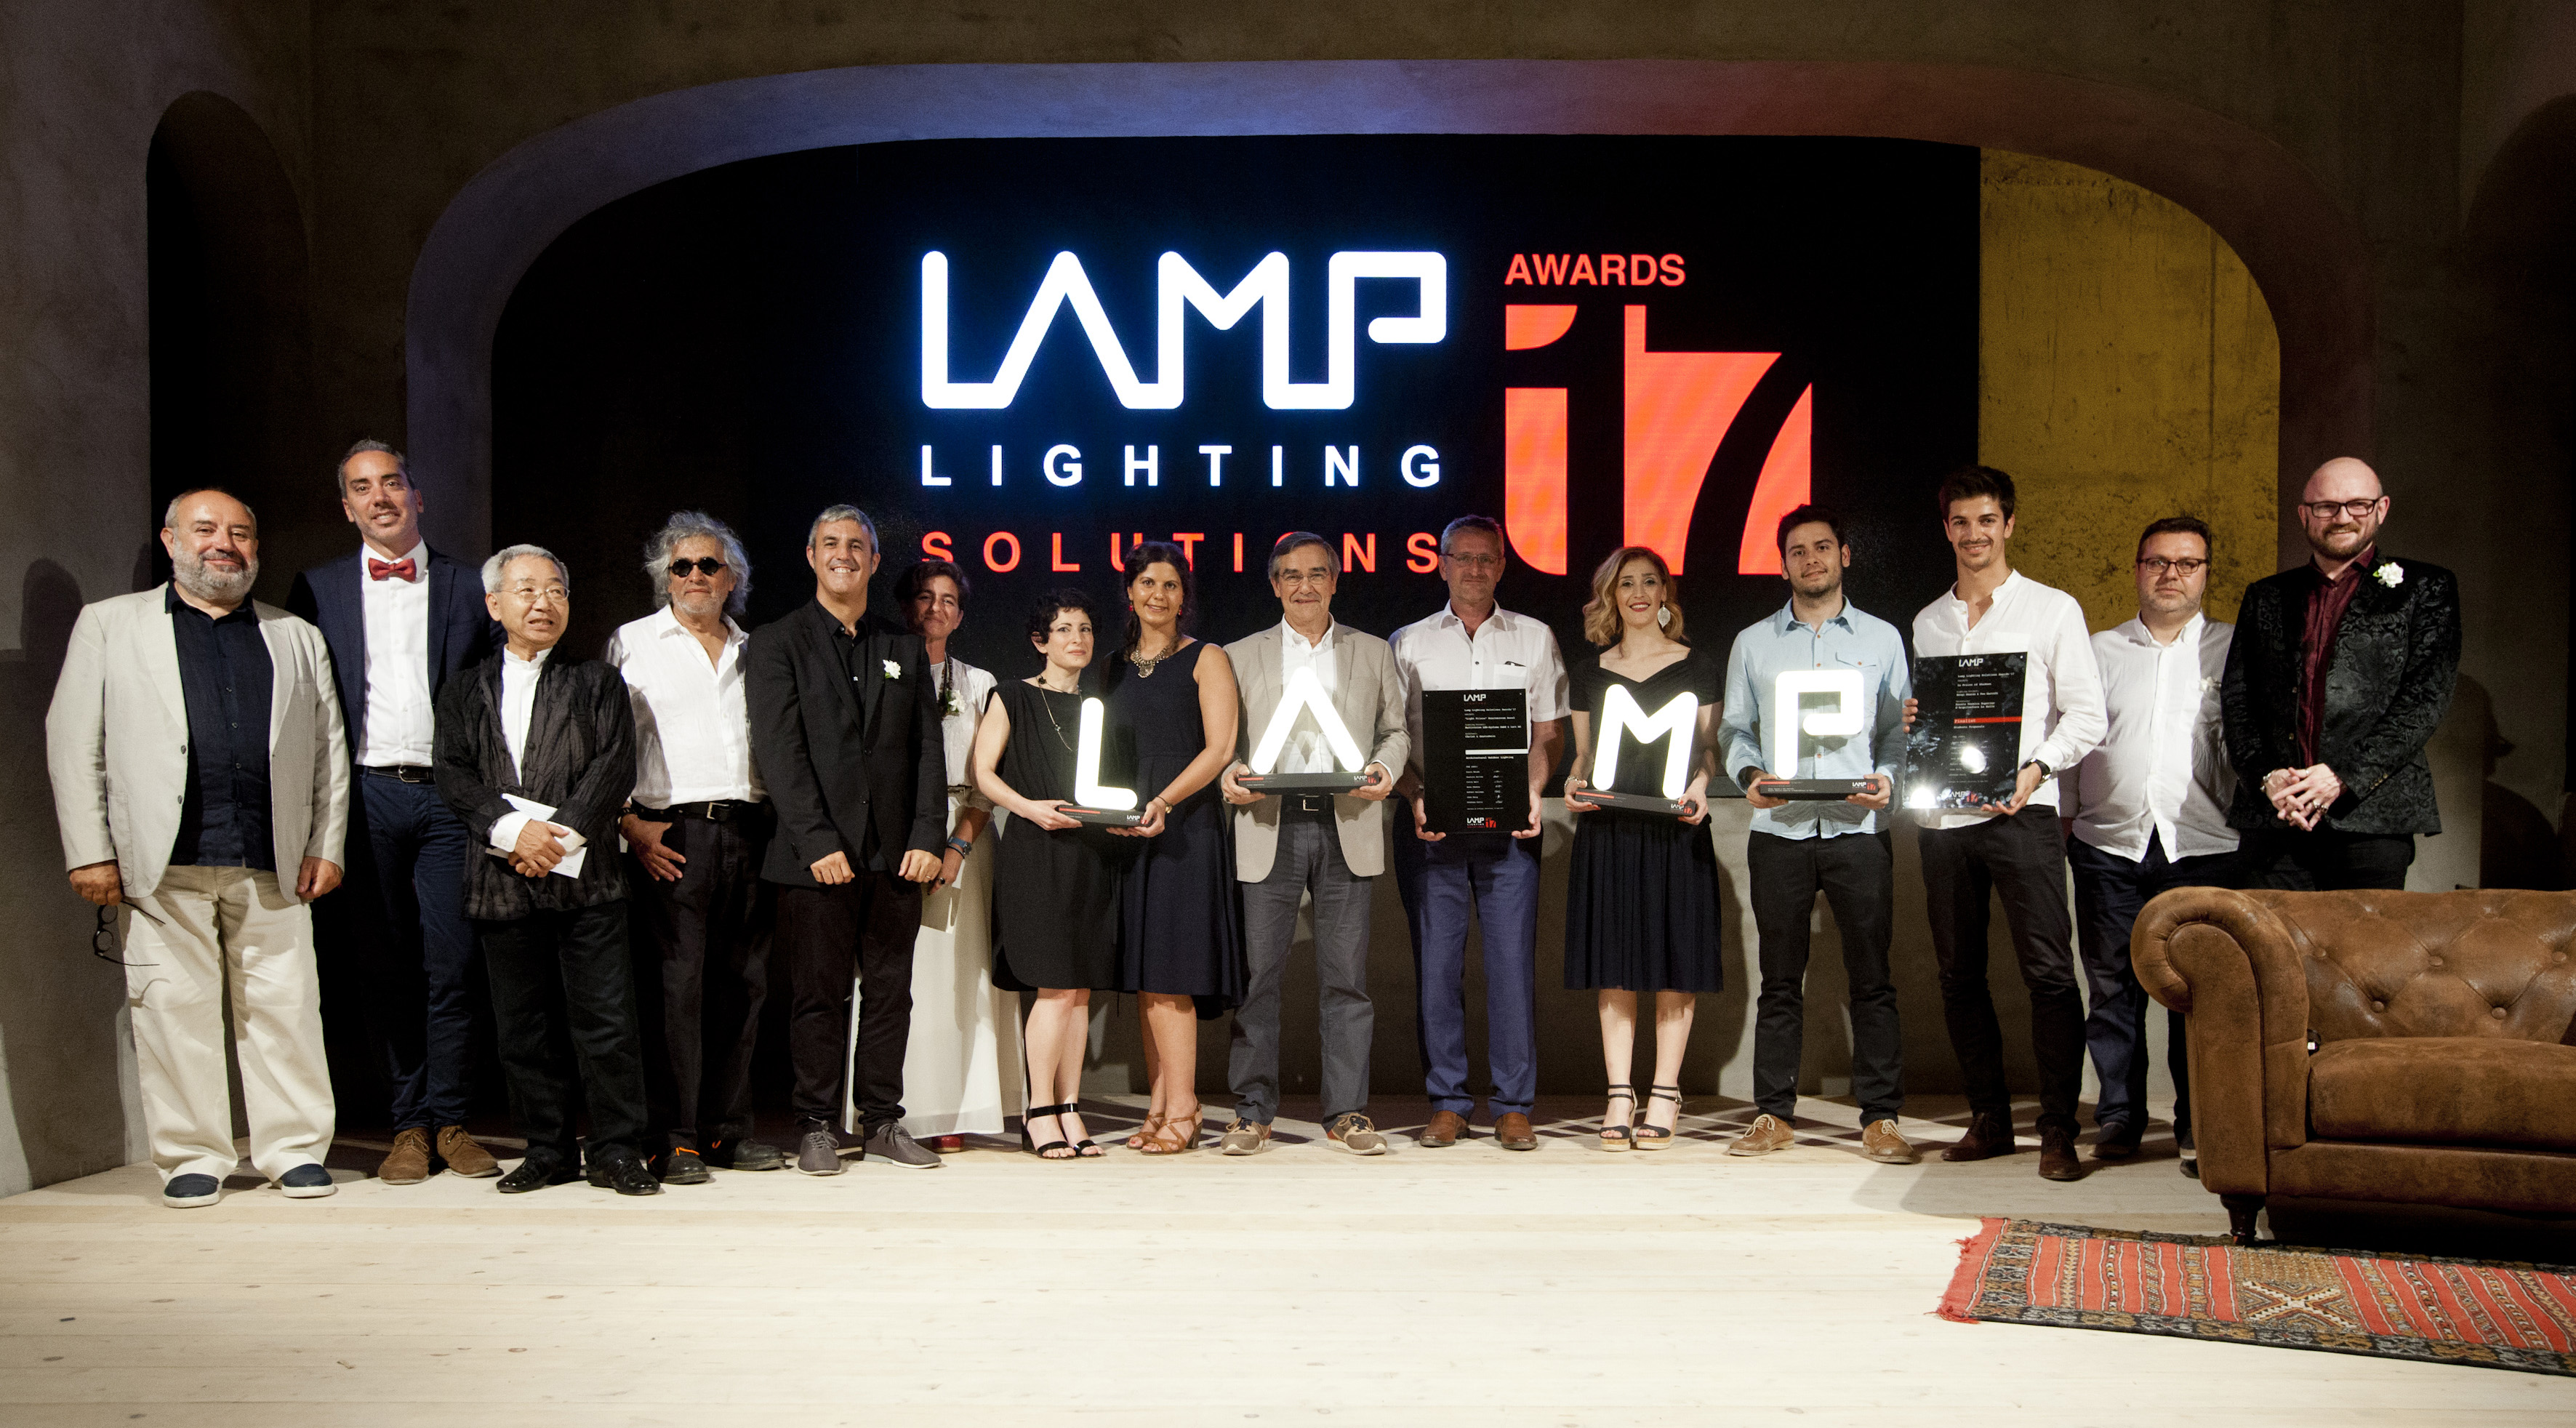 Lamp Lighting Solutions Awards 2017 already have winners! | LAMP for Lighting Lamp Ceremony  76uhy